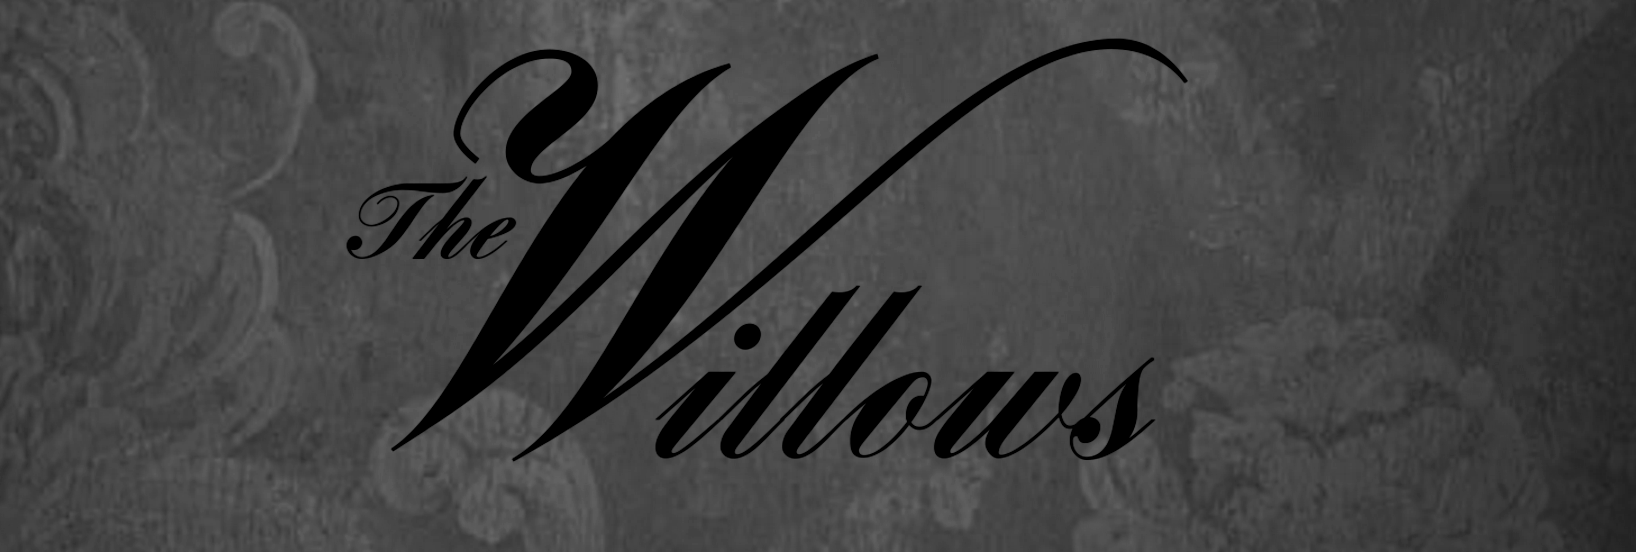 The Willows Justin Fix Interview CreepLA Horror Immersive Theater Year Round Haunt